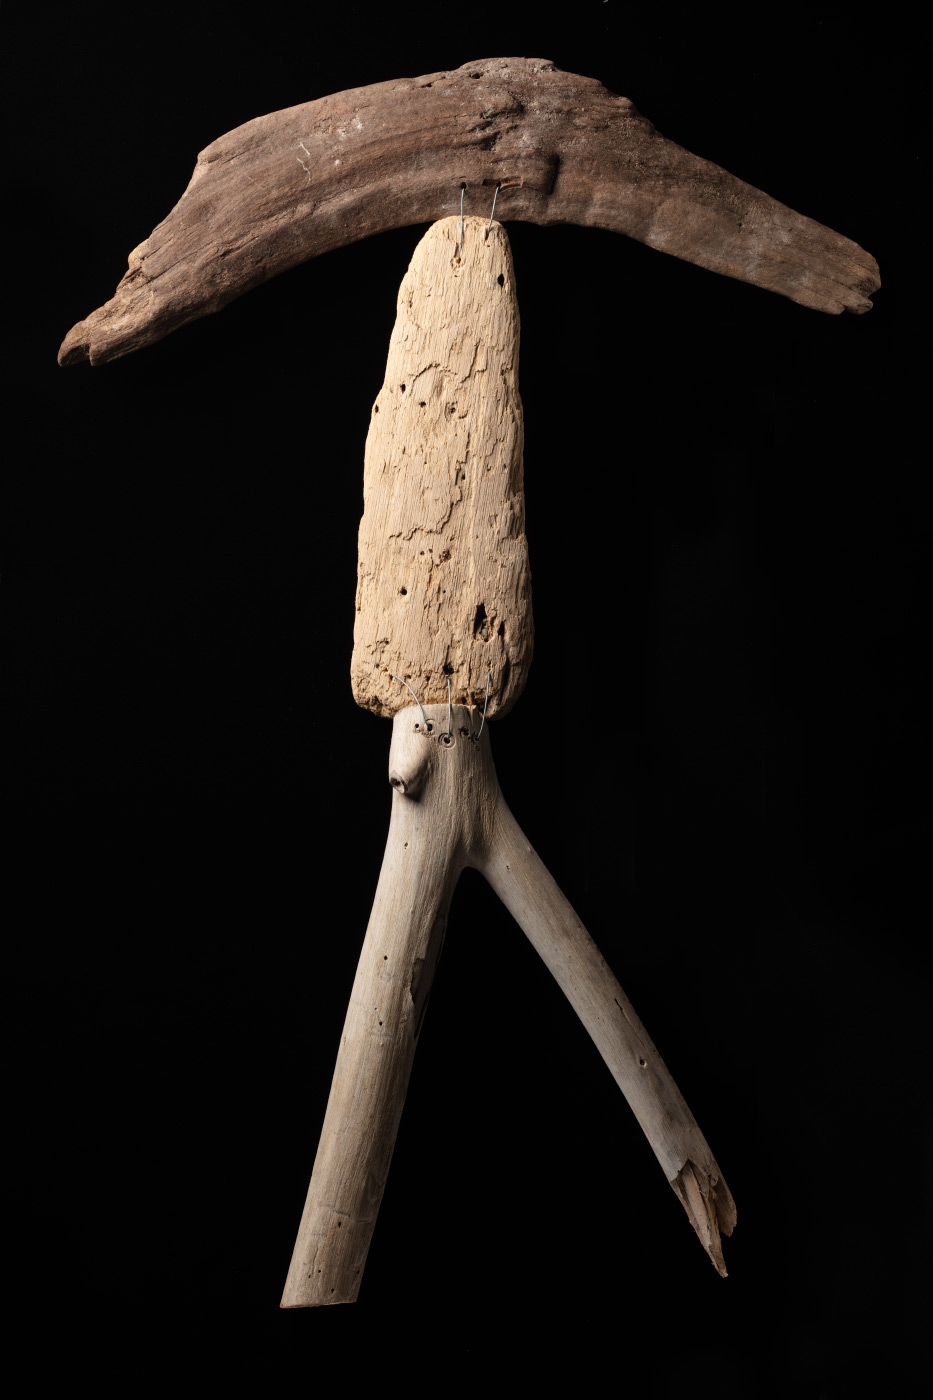 A figurative artwork made from driftwood and galvanised wire. - click to view larger image